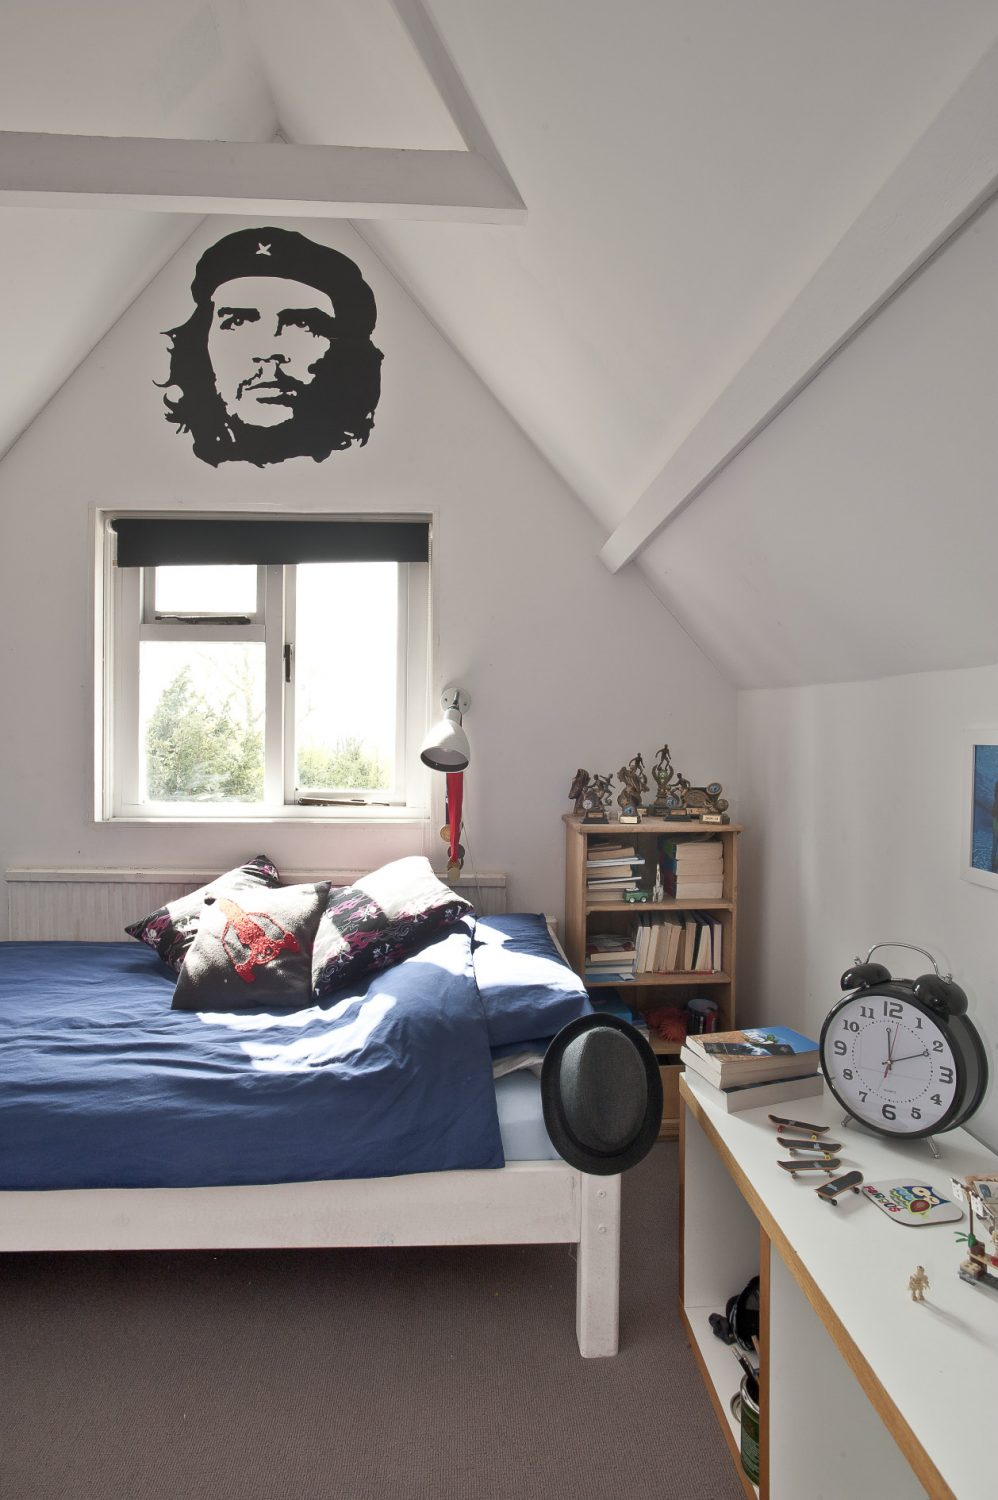 Up a tiny staircase in the vaulted eaves is her son's room, all Airfix and Boys Own stuff